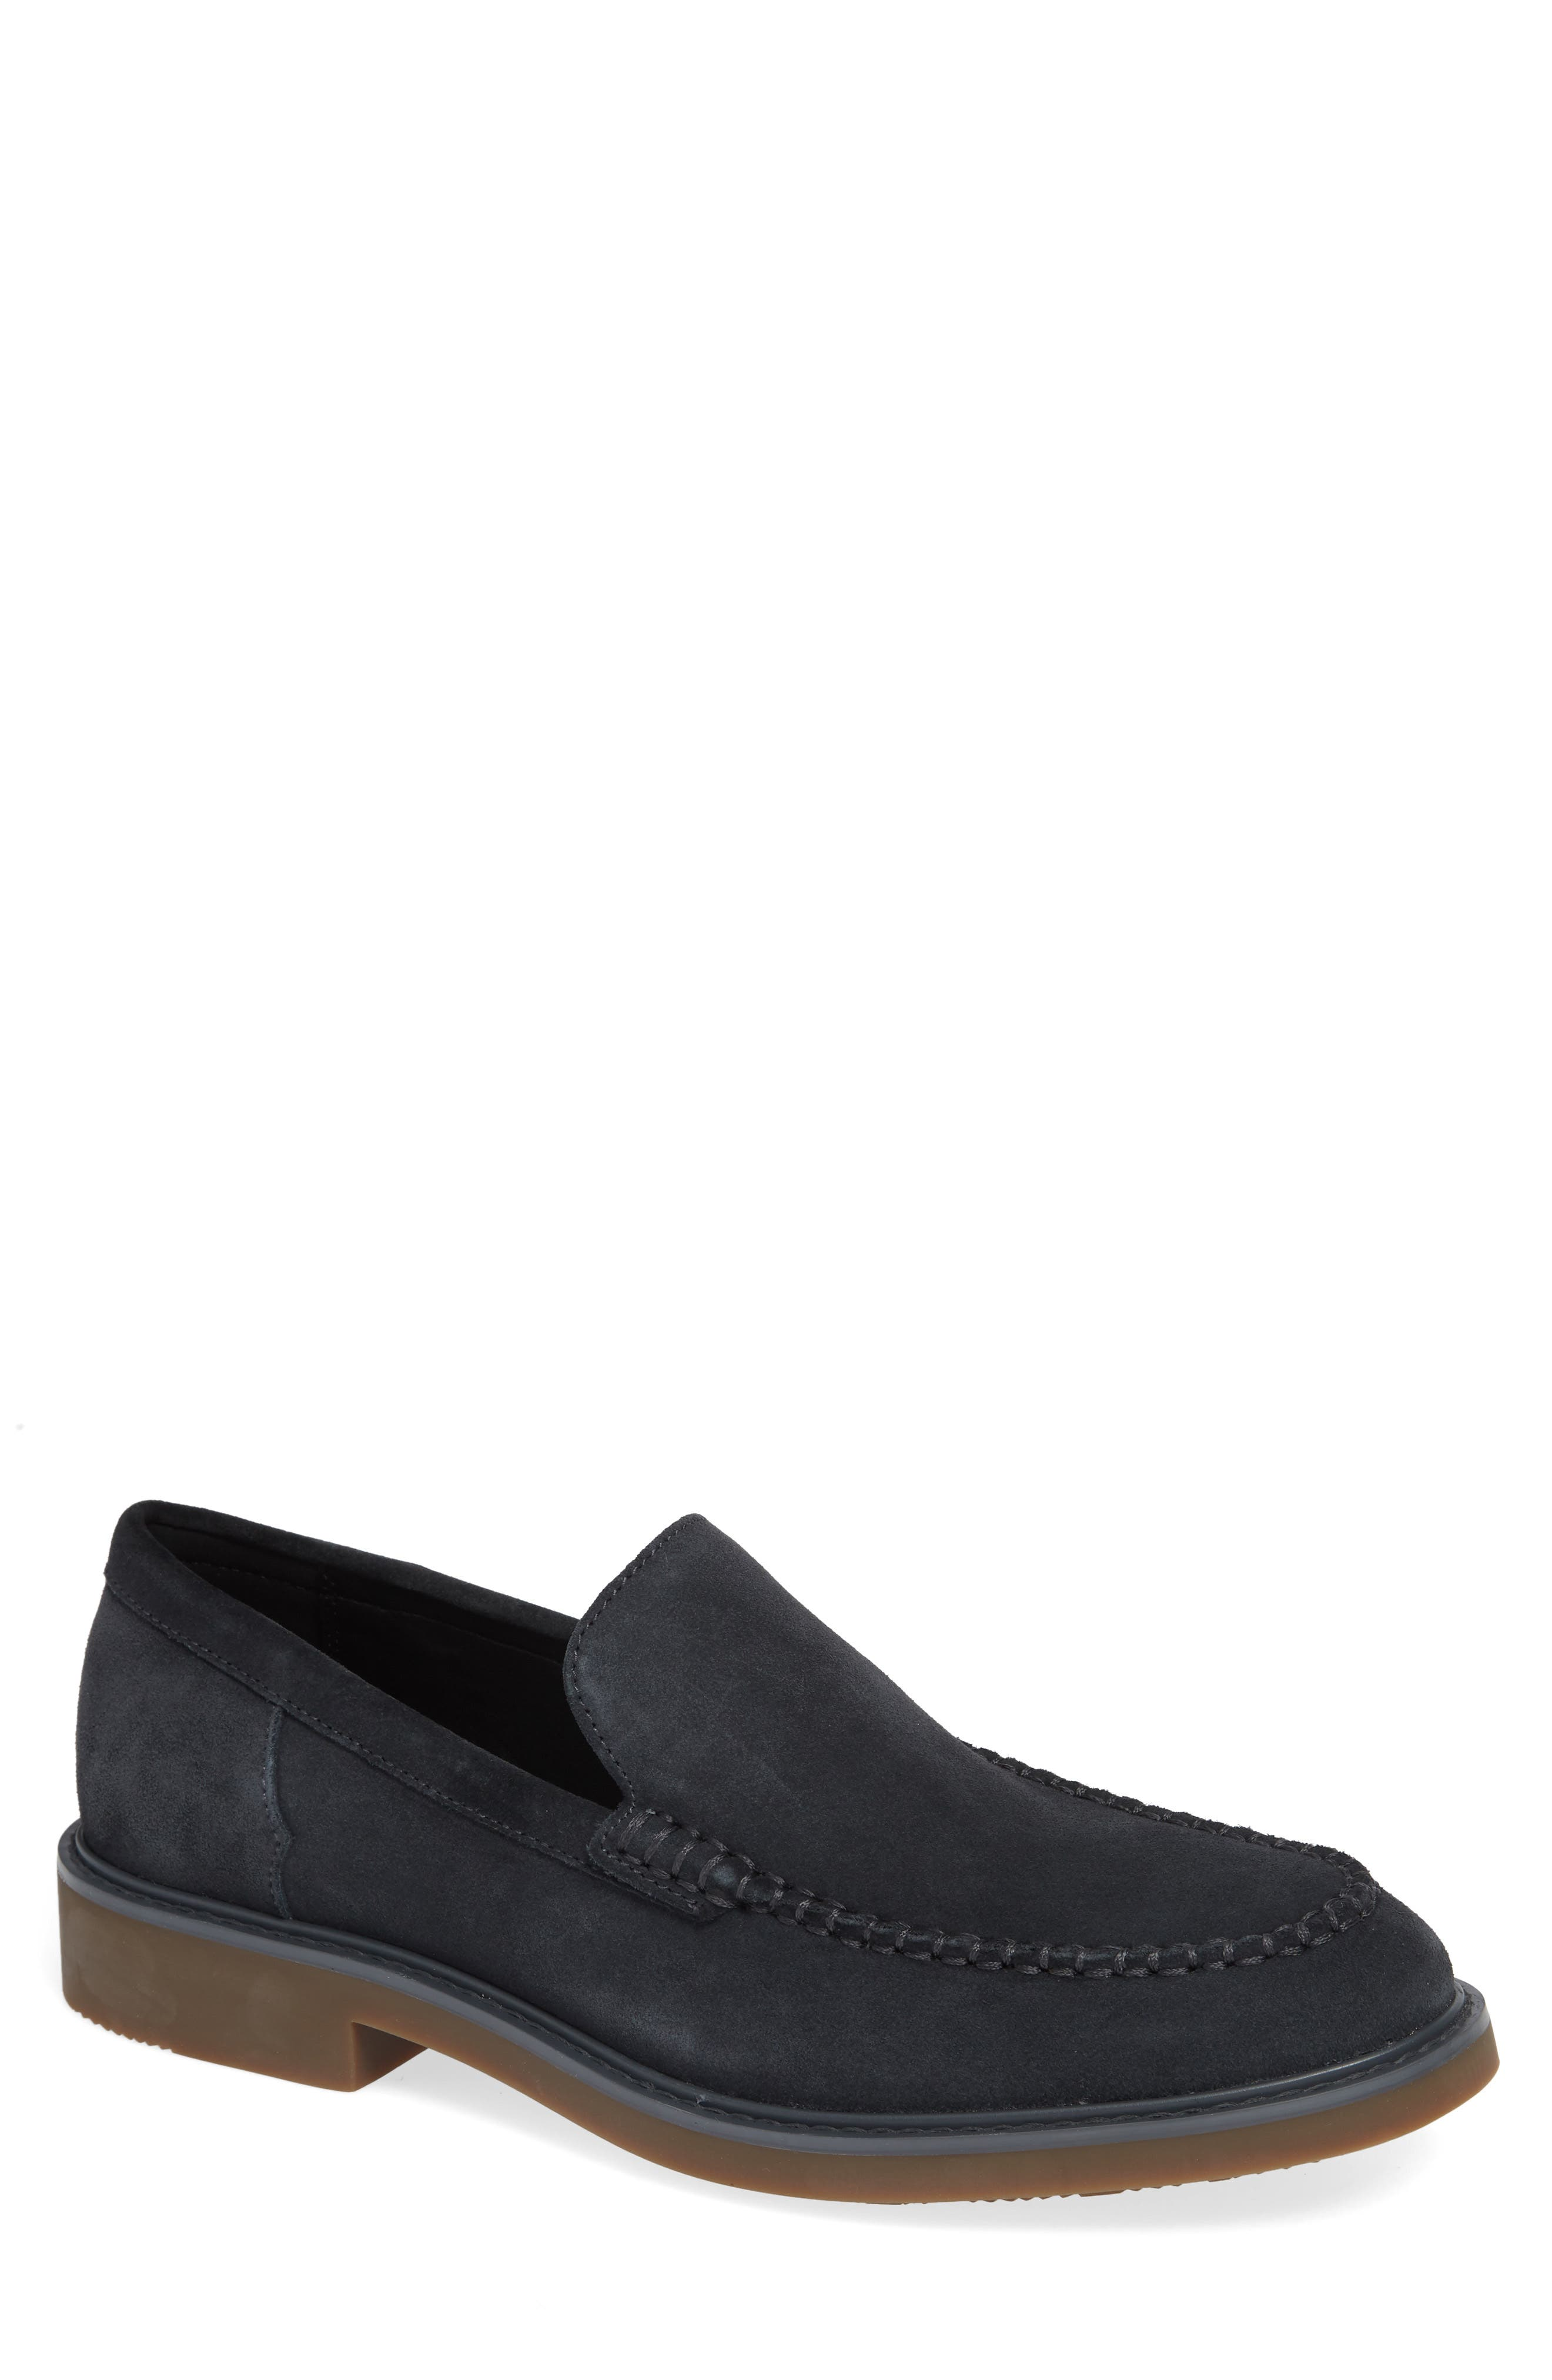 Vance Apron Toe Loafer,                             Main thumbnail 1, color,                             STEEL GREYSTONE CALF SUEDE